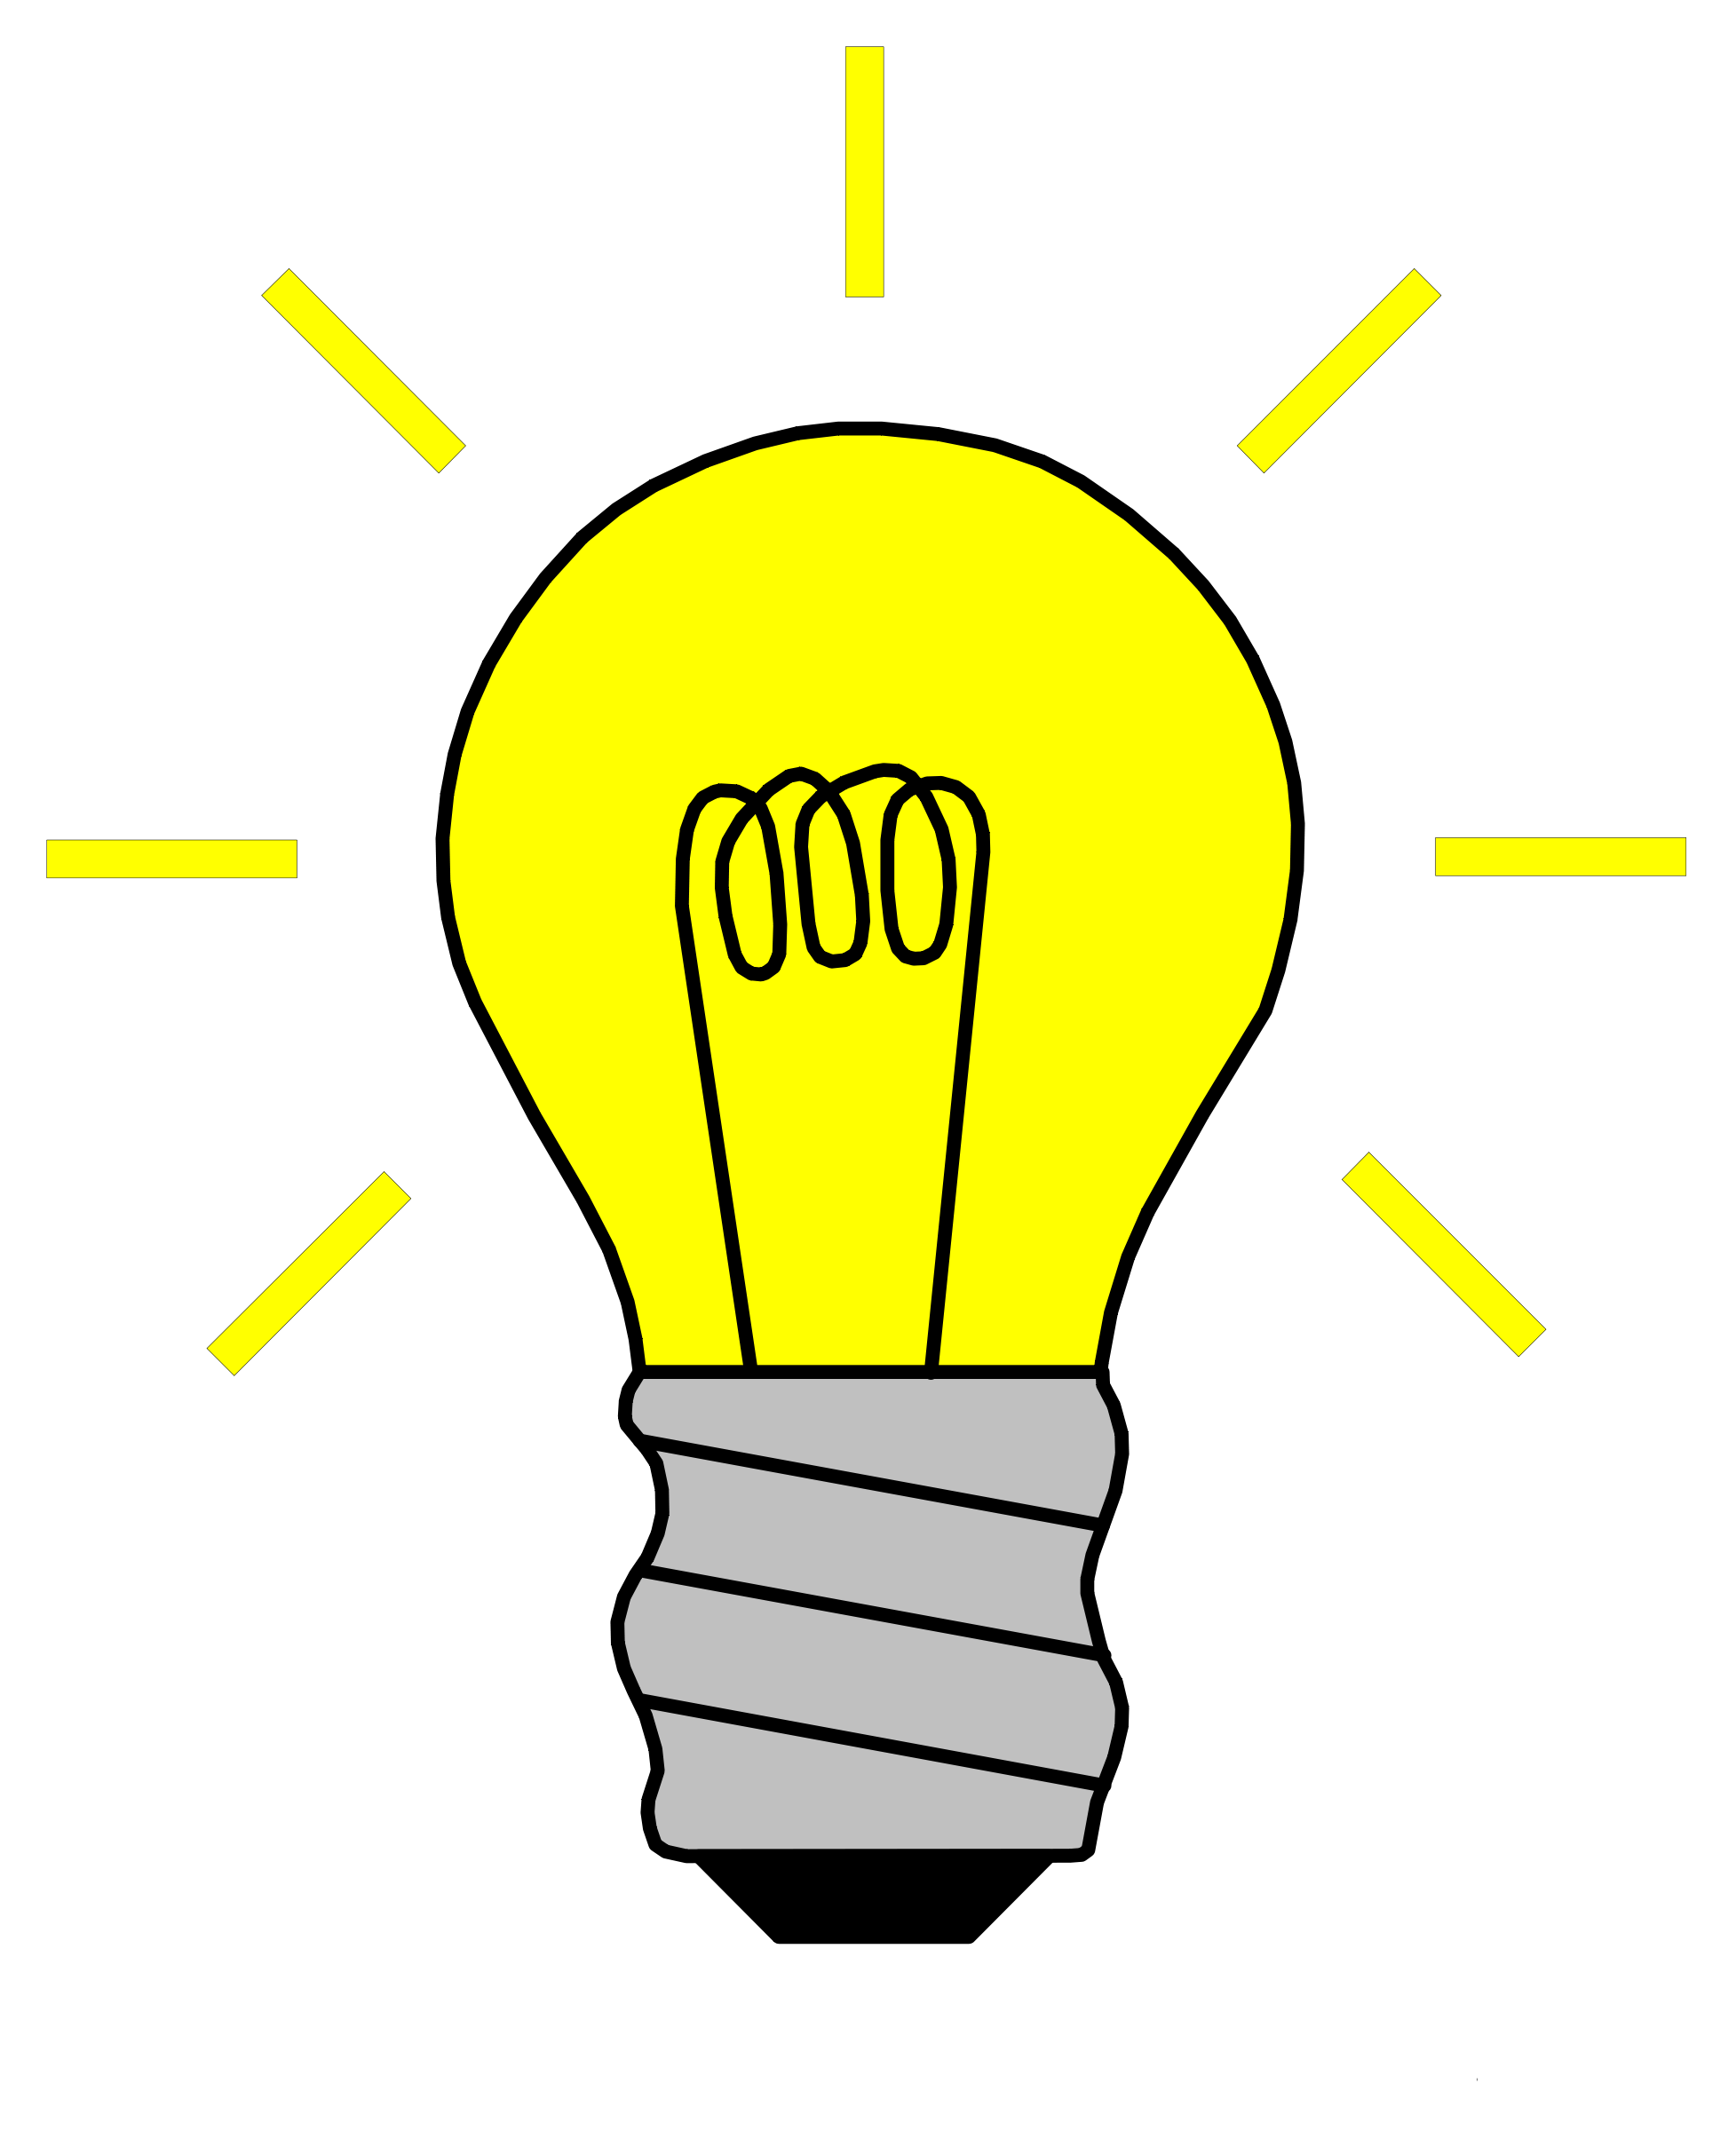 Light bulb clip art for kids free clipart images